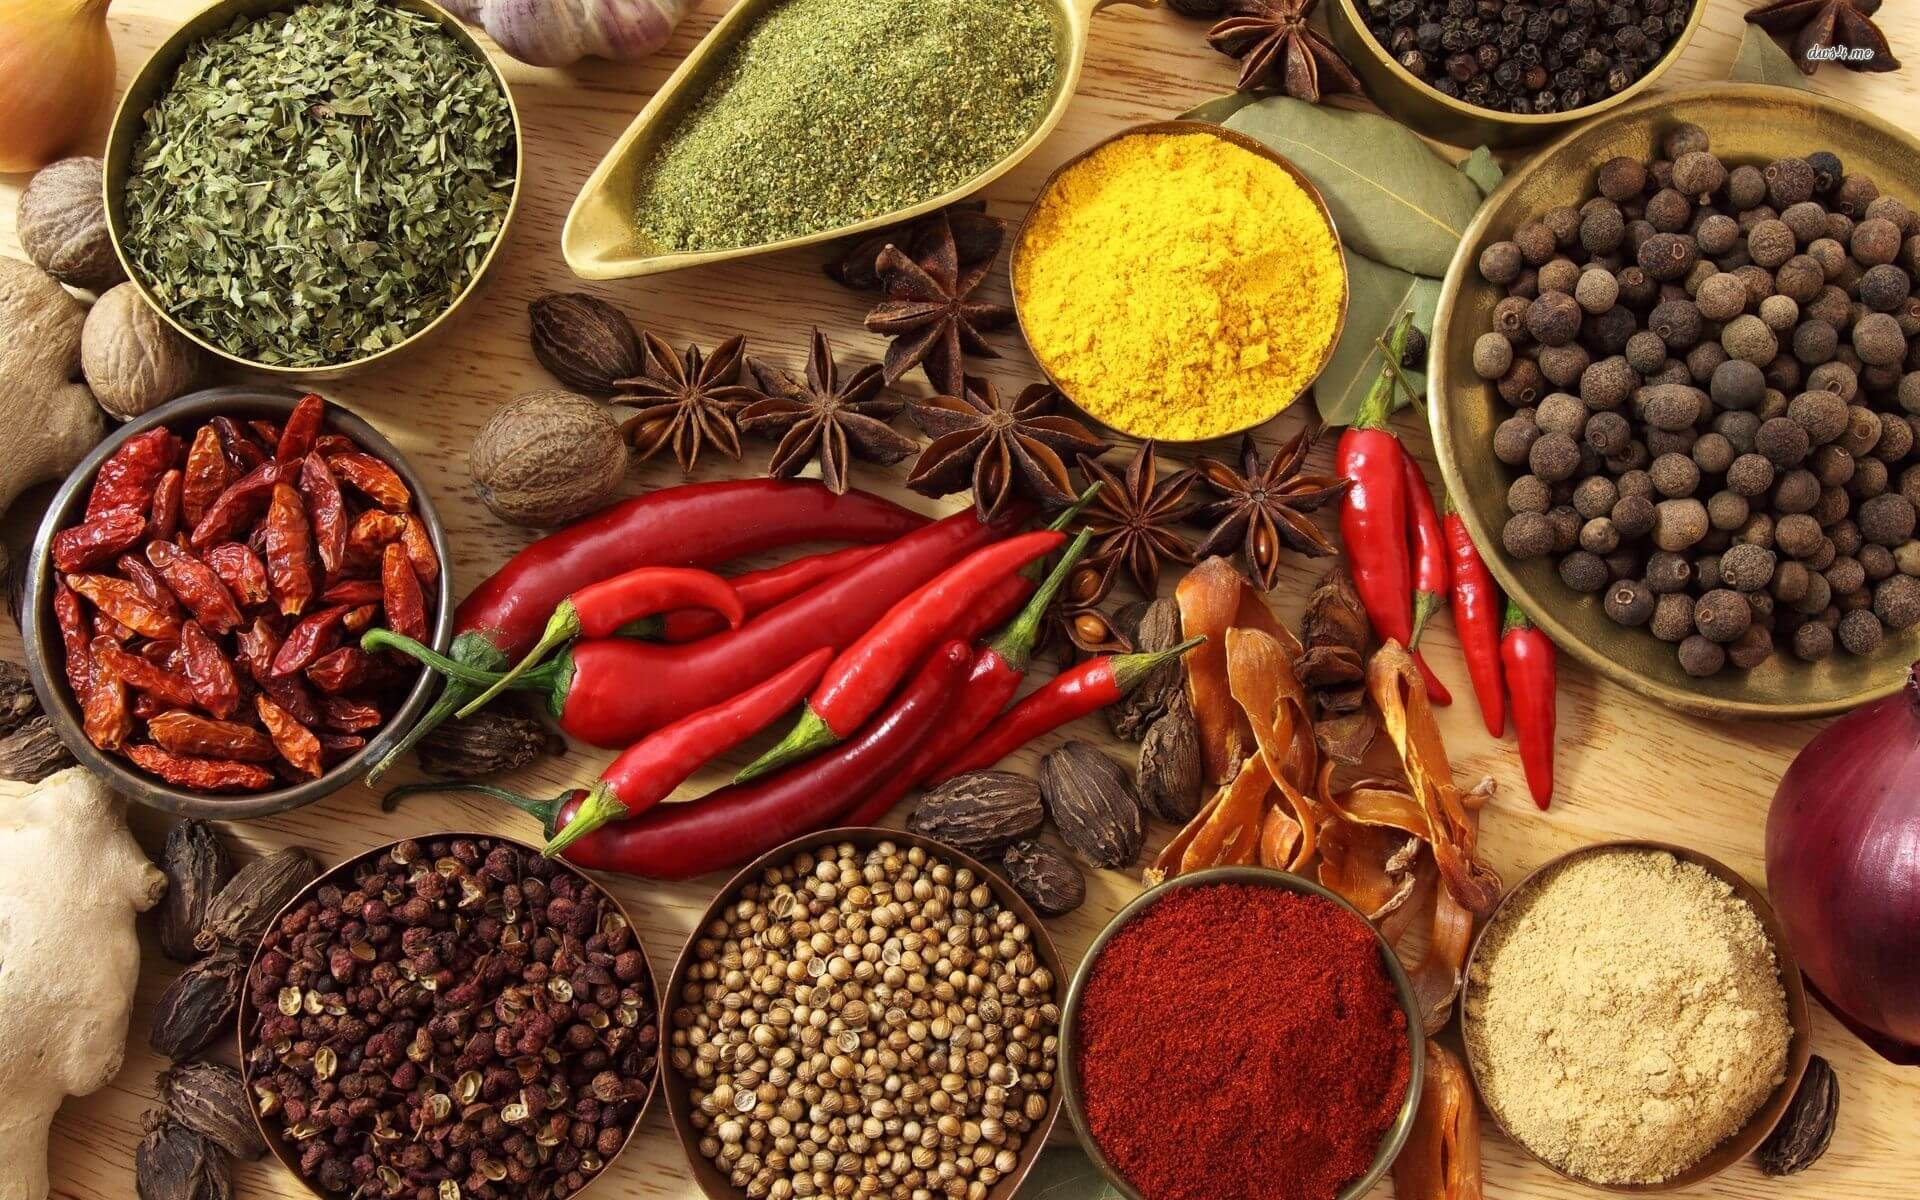 Other Spices